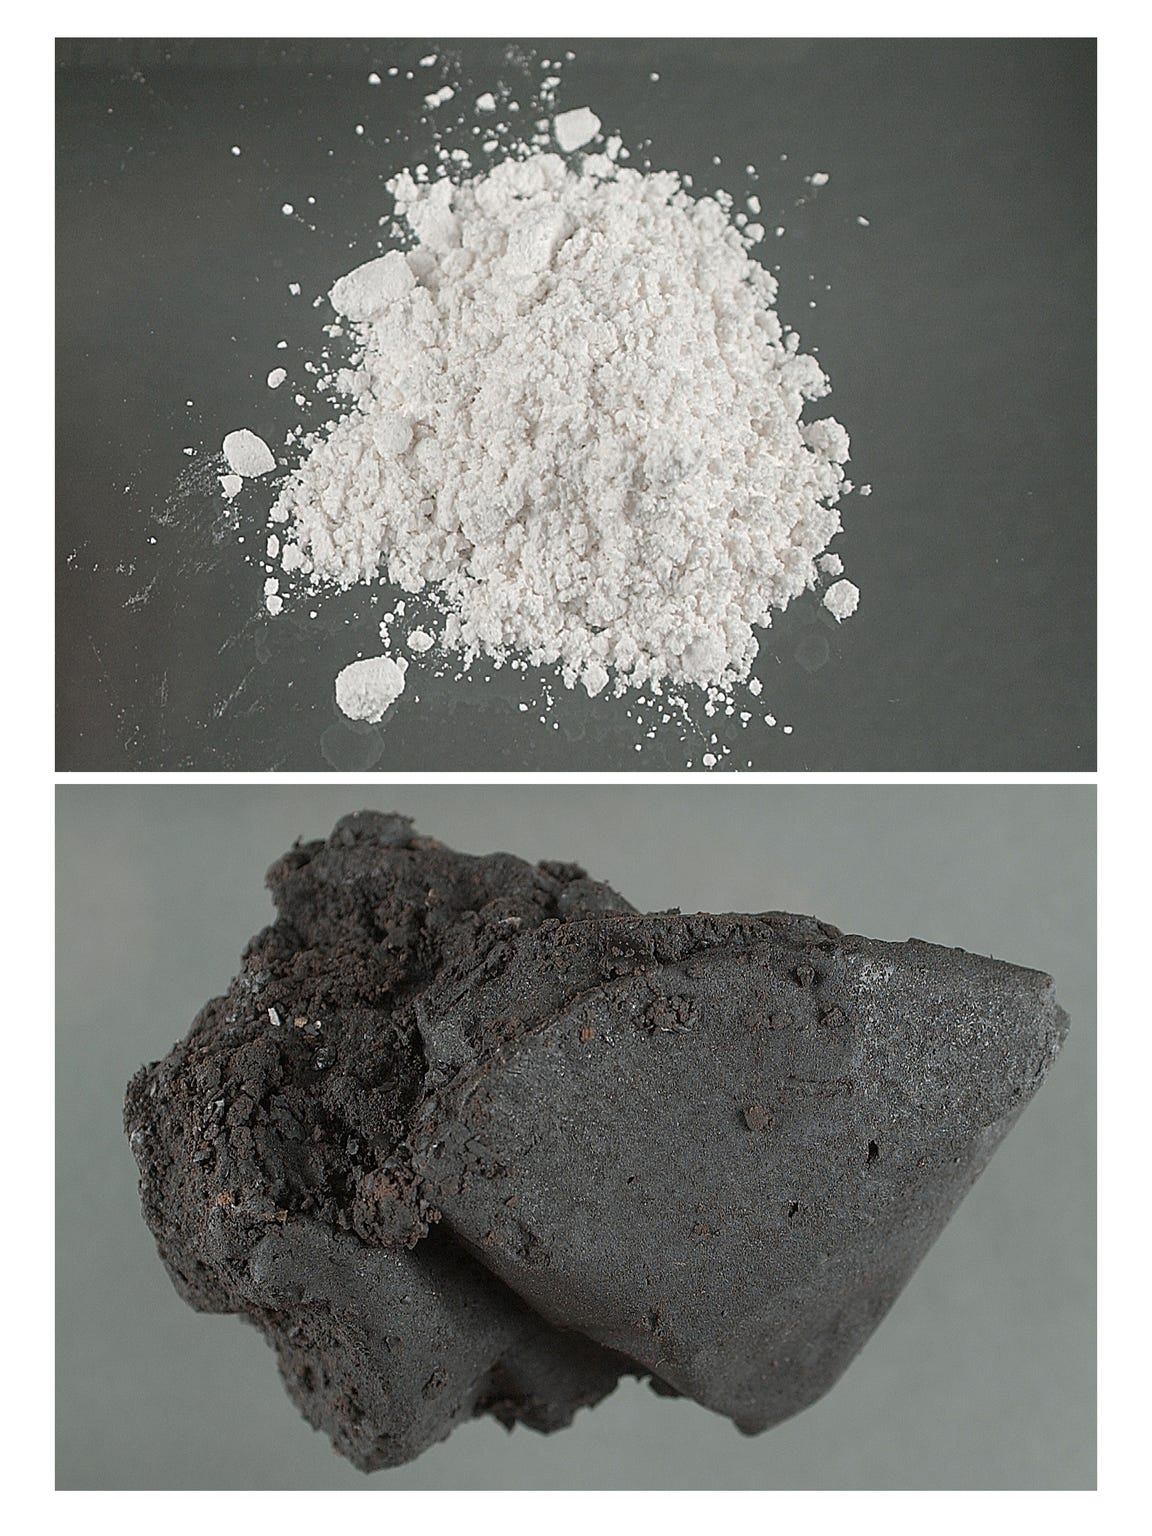 This composite image shows white powder heroin, top, and black tar heroin, bottom. DEA officials say Riverside County has seen a surge of white powder heroin seizures, which is unusual.